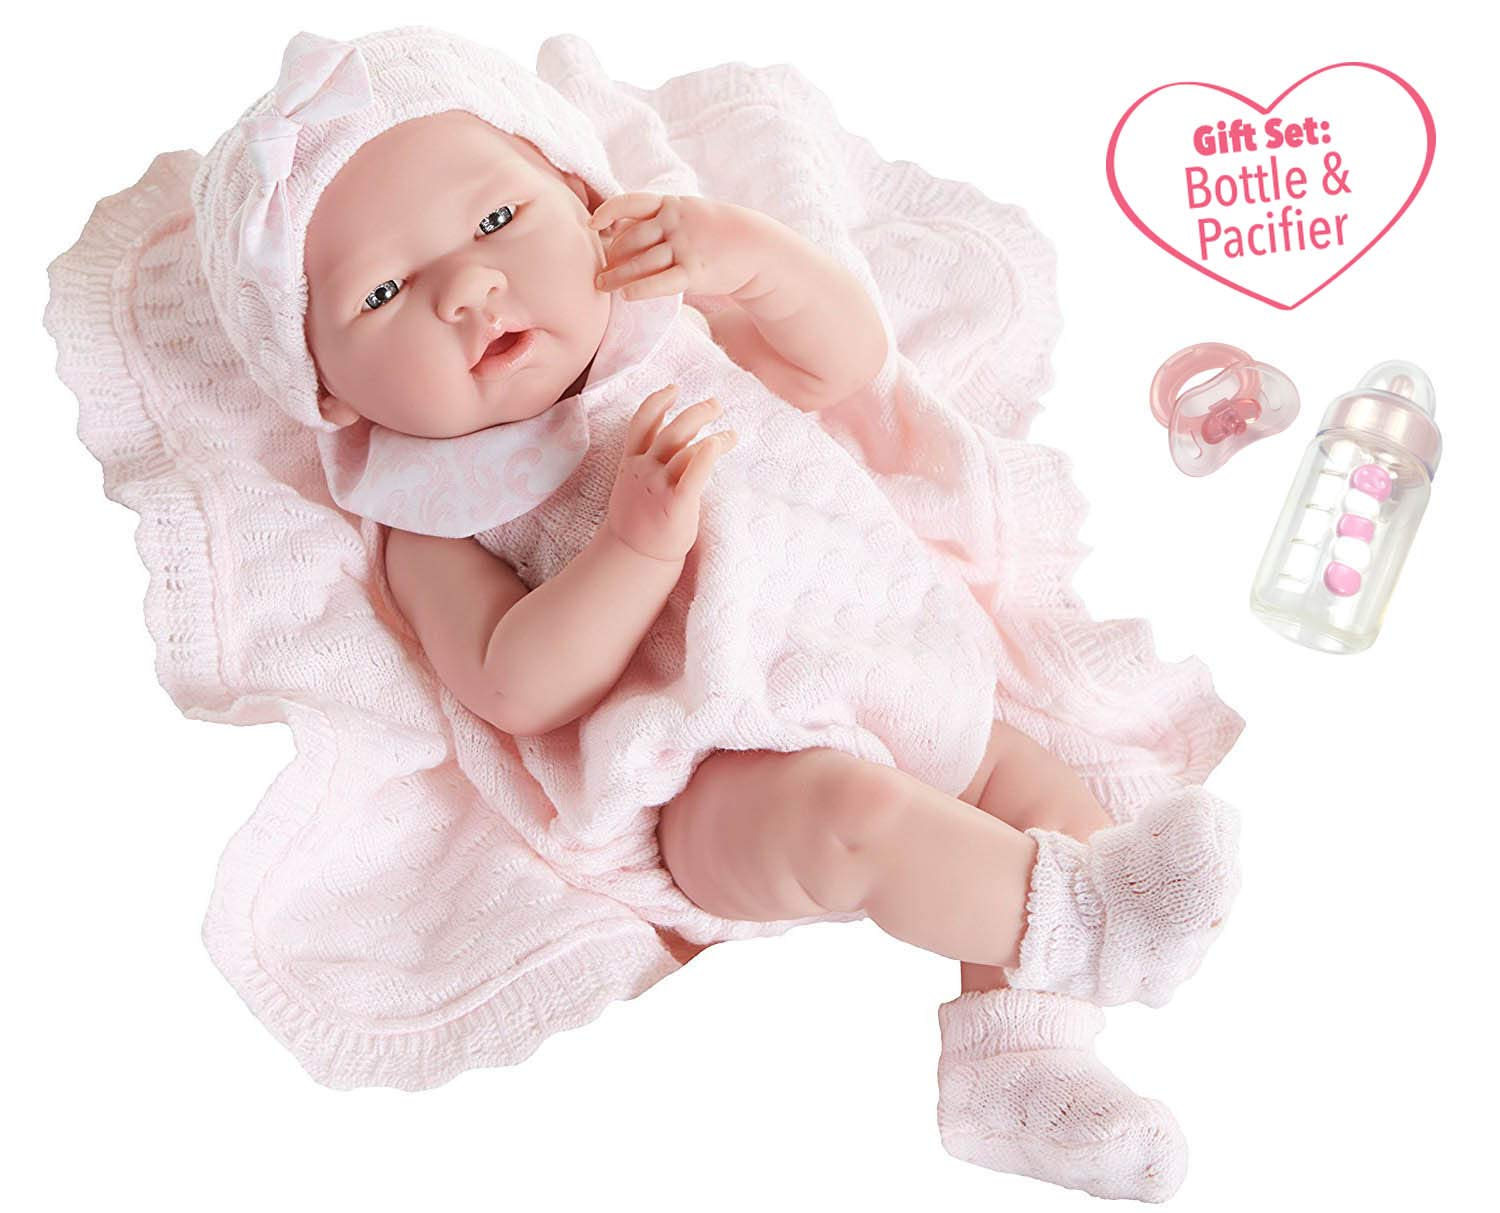 """JC Toys La Newborn All-Vinyl-Anatomically Correct Real Girl 15"""" Baby Doll in Pink Knit Outfit and Accessories, Designed by Berenguer."""